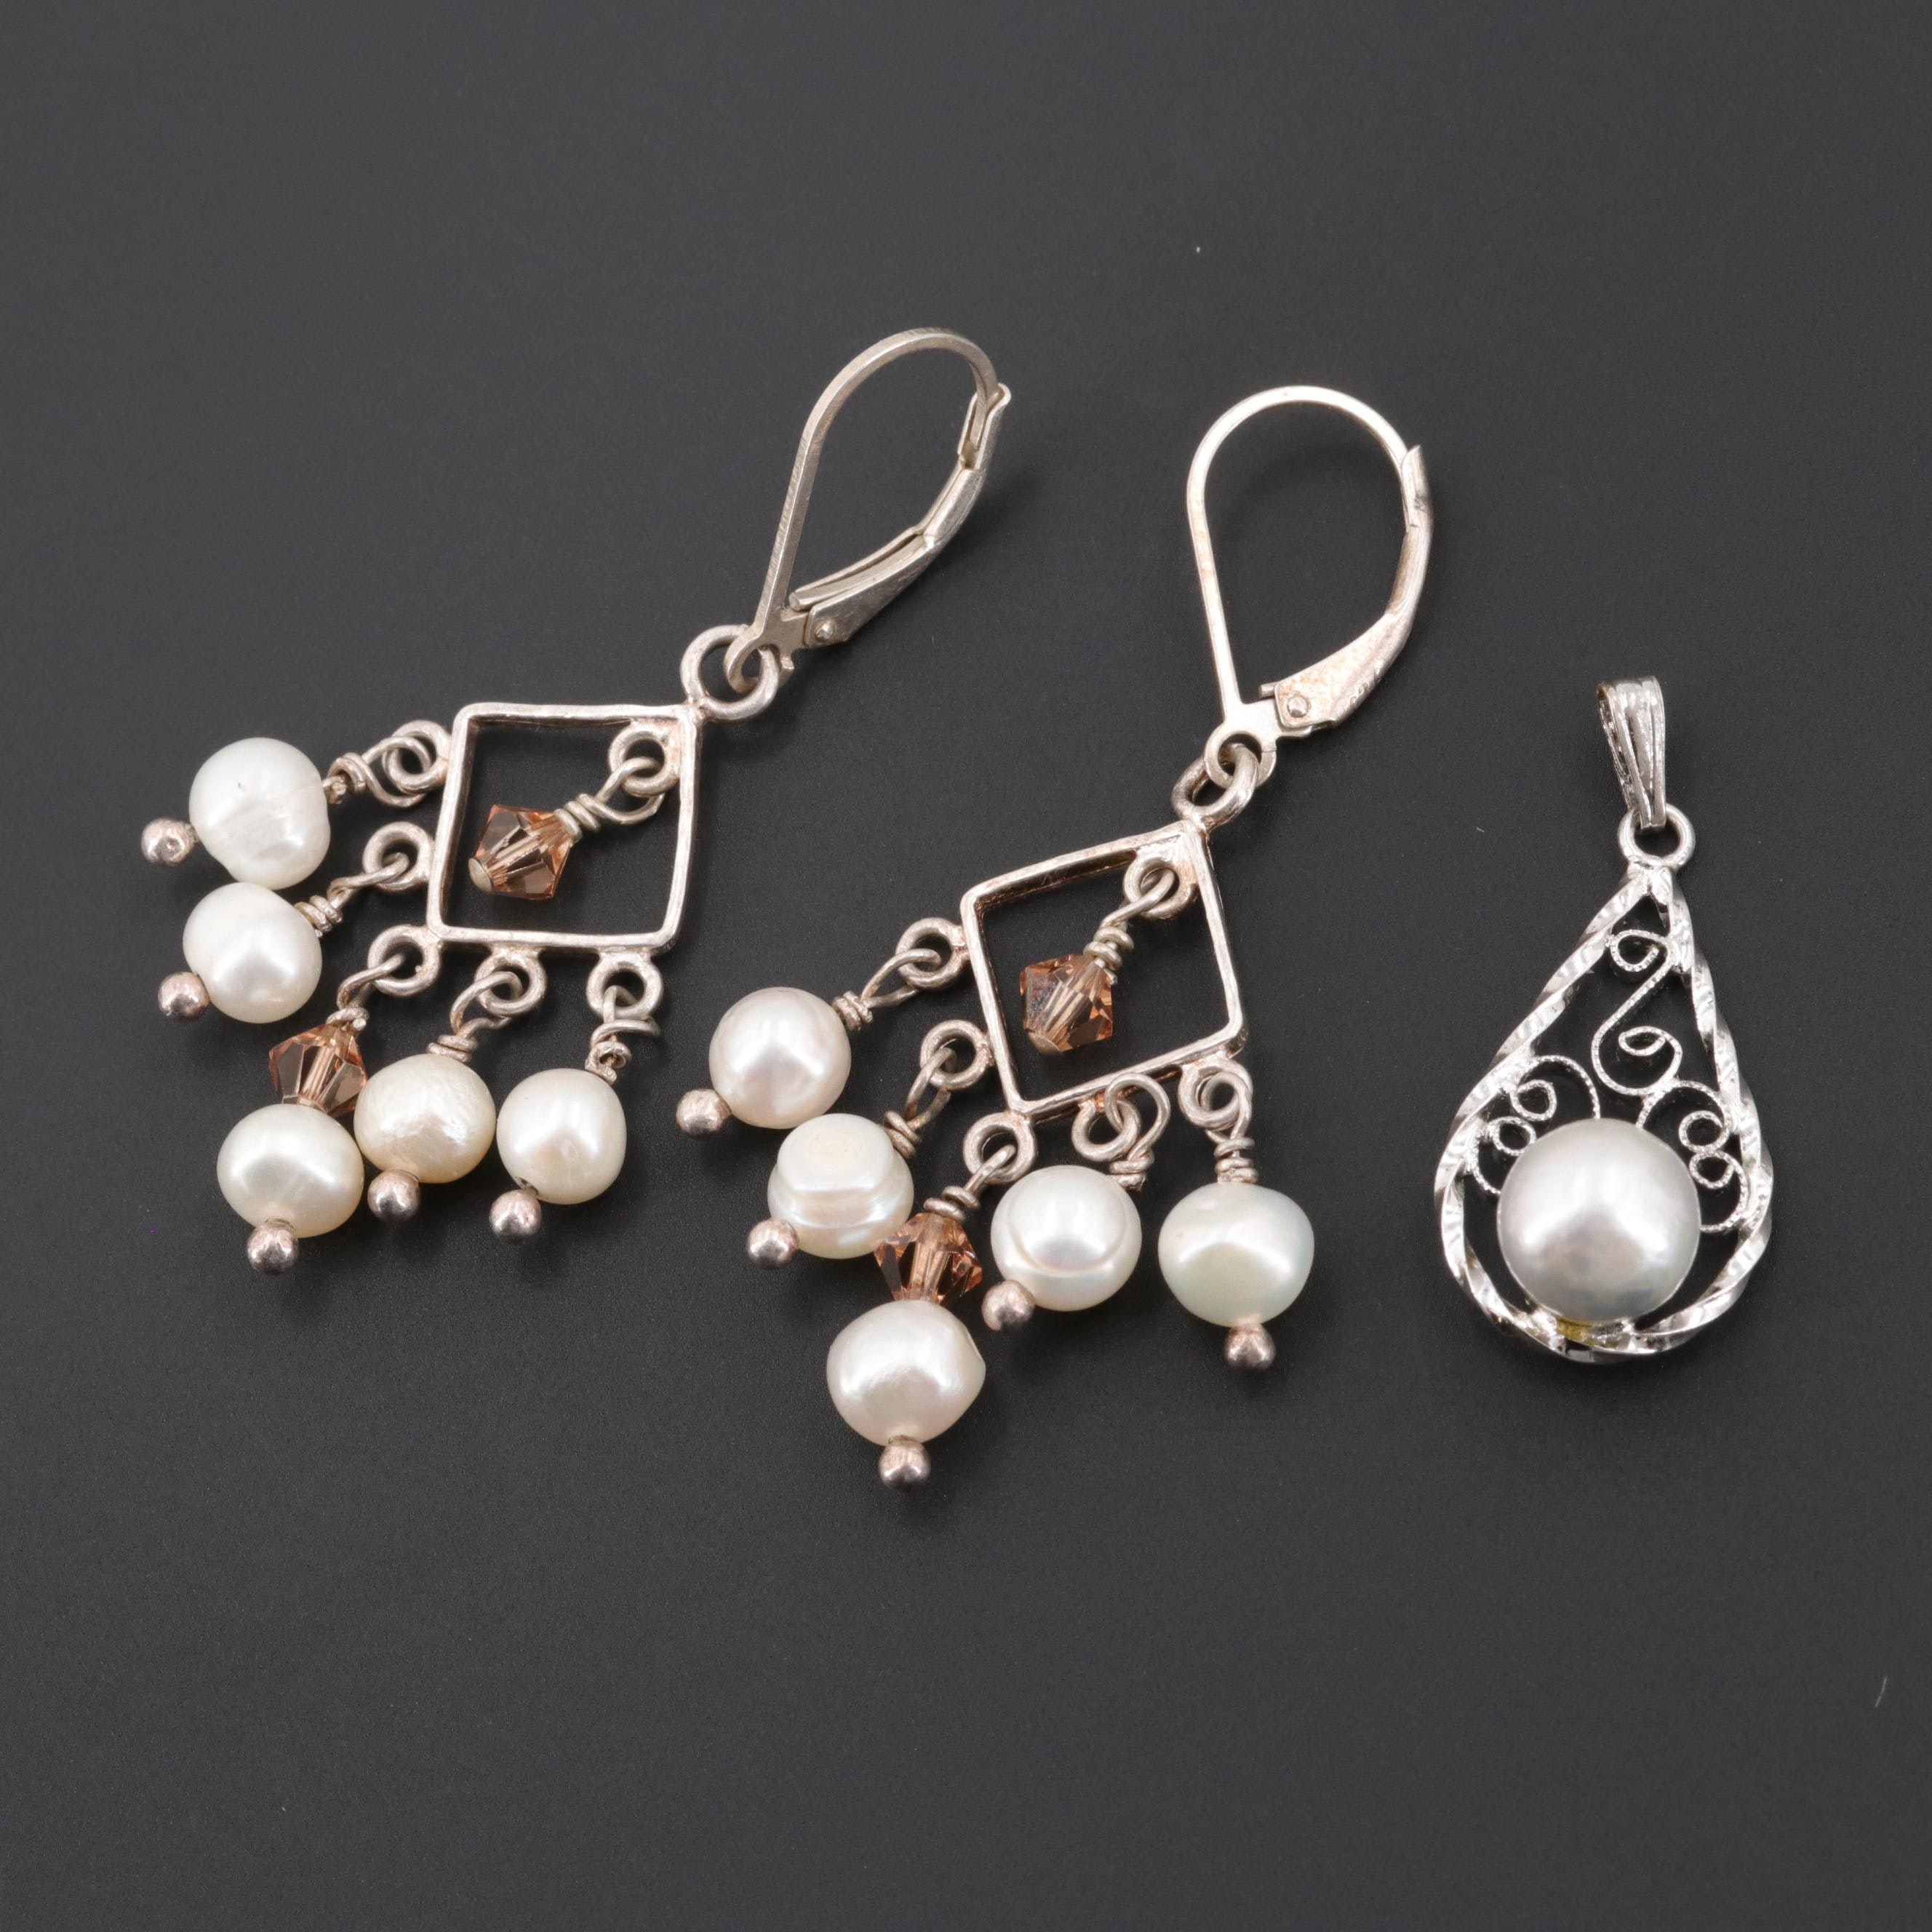 Sterling Silver Cultured Pearl and Glass Earrings and Pendant